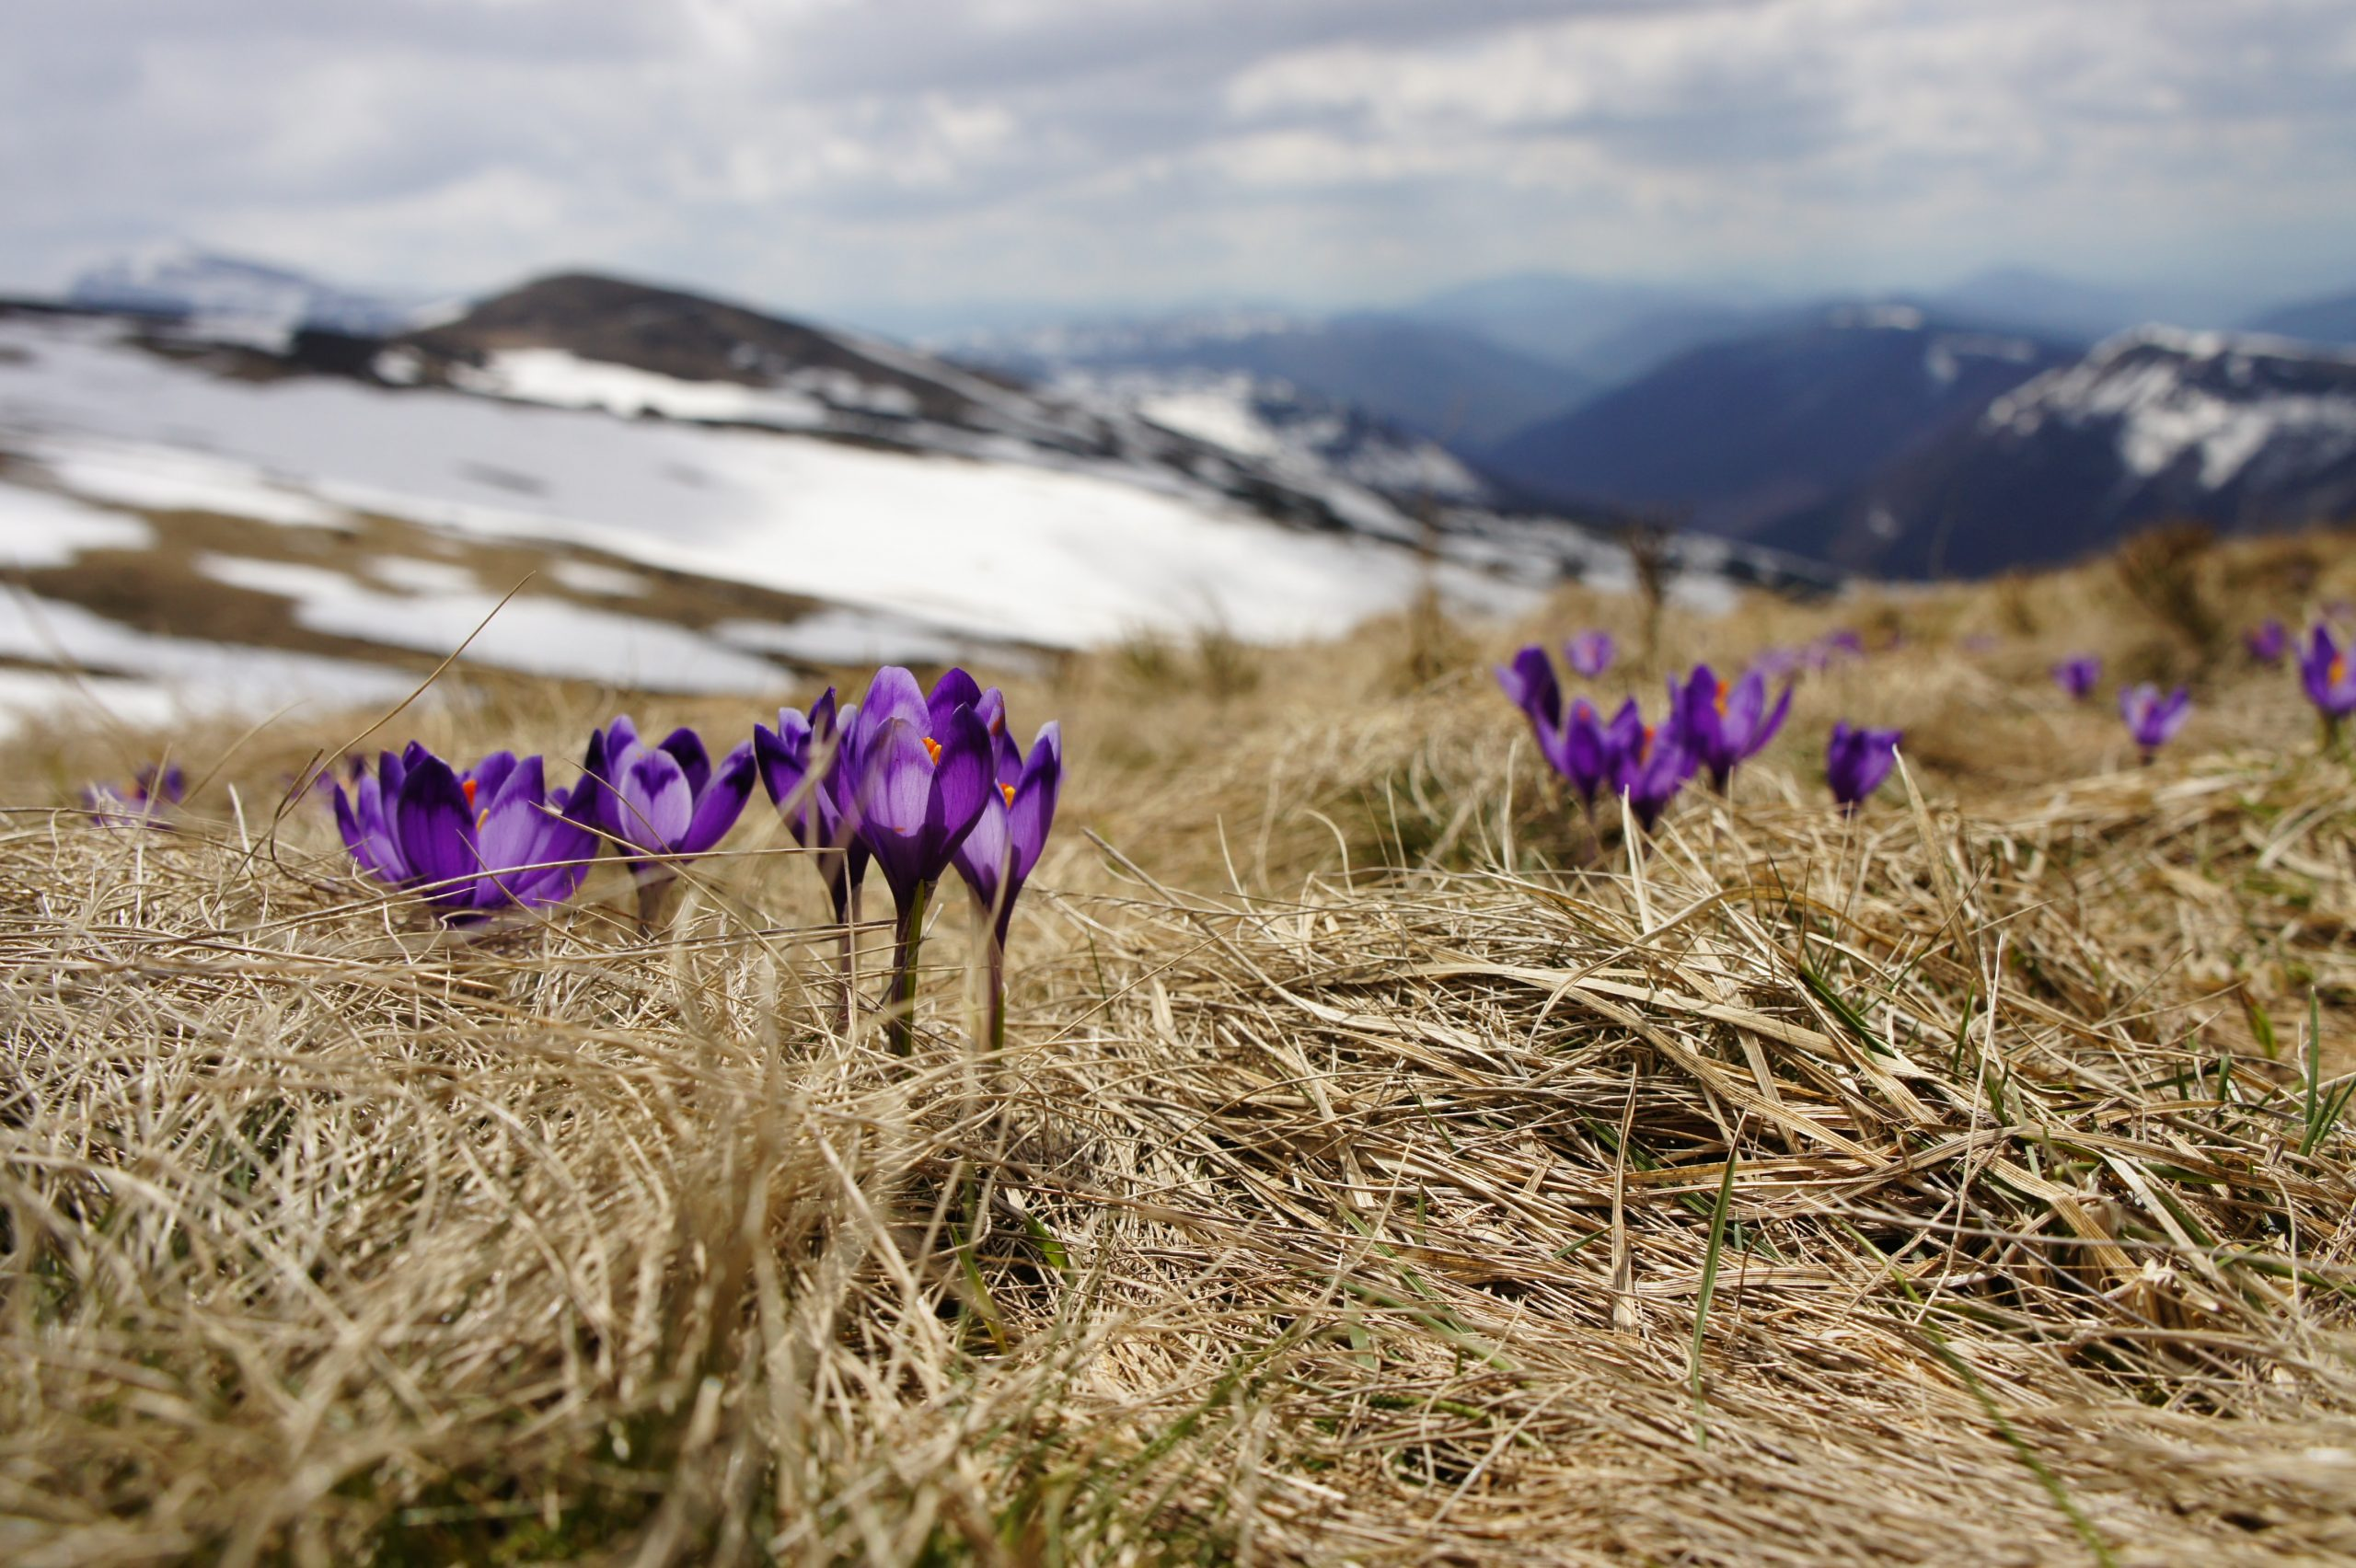 Welcoming Spring During Self-Isolation